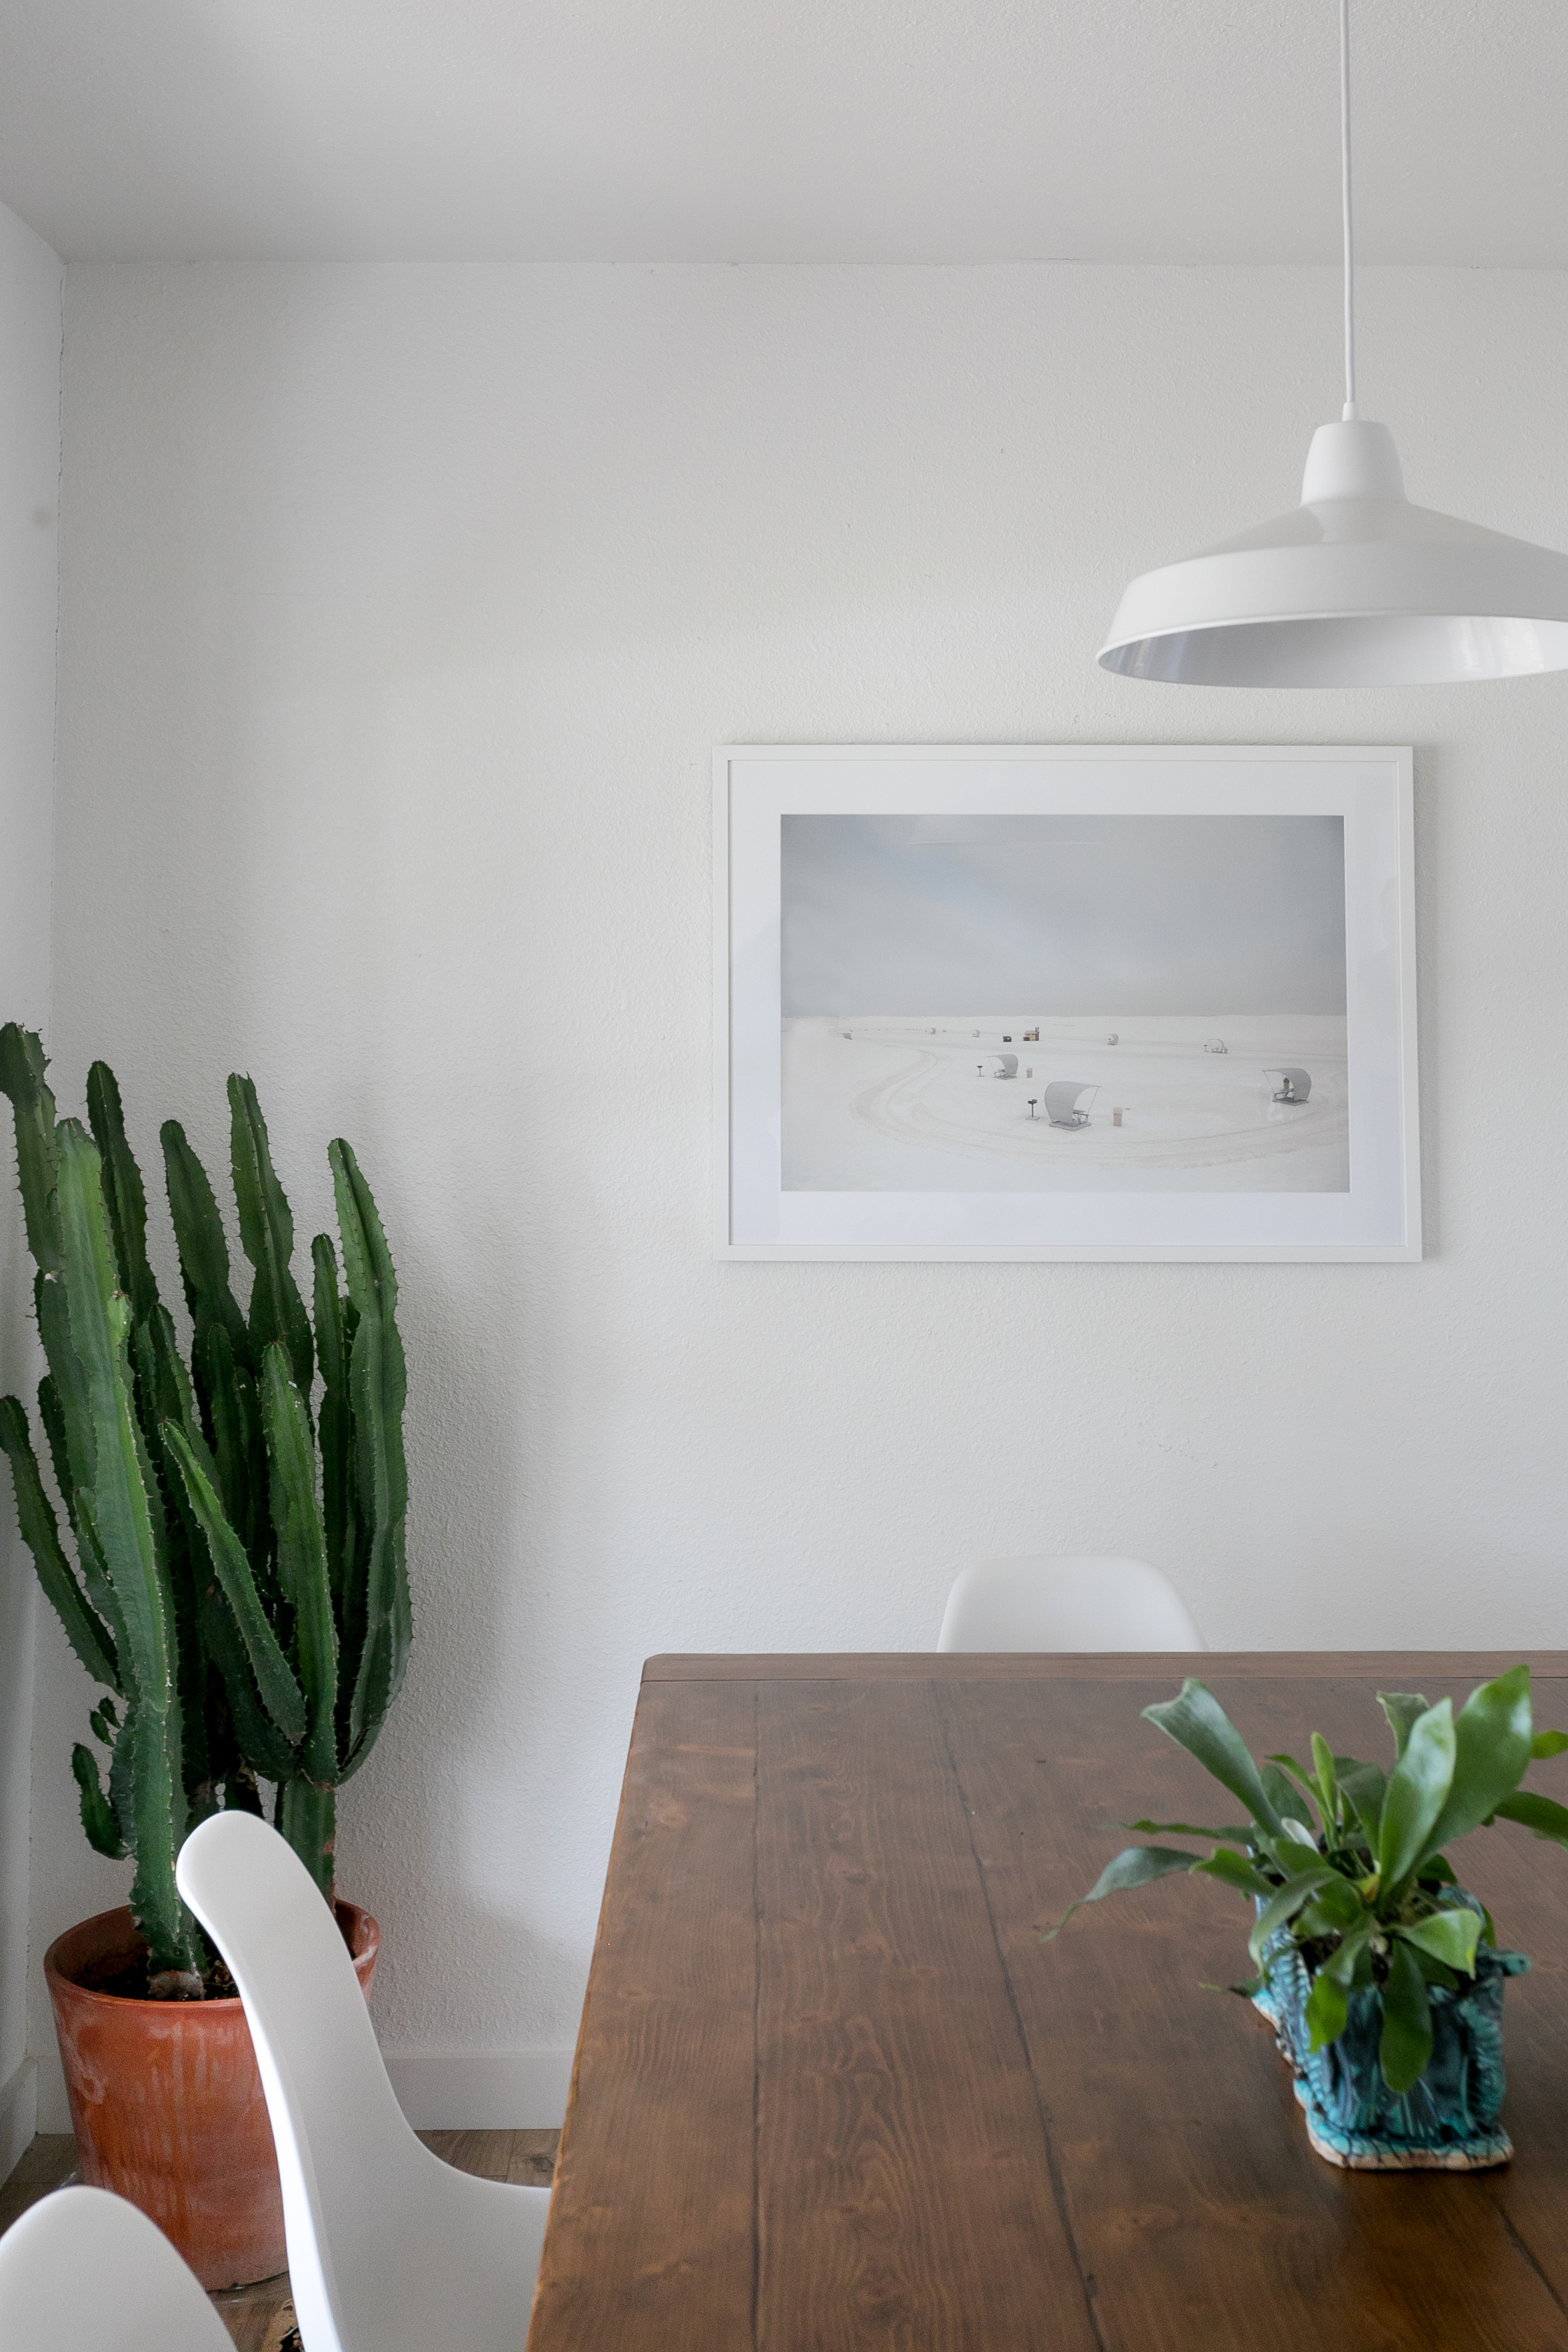 White Sands New Mexico Print by Sarah Natsumi Moore